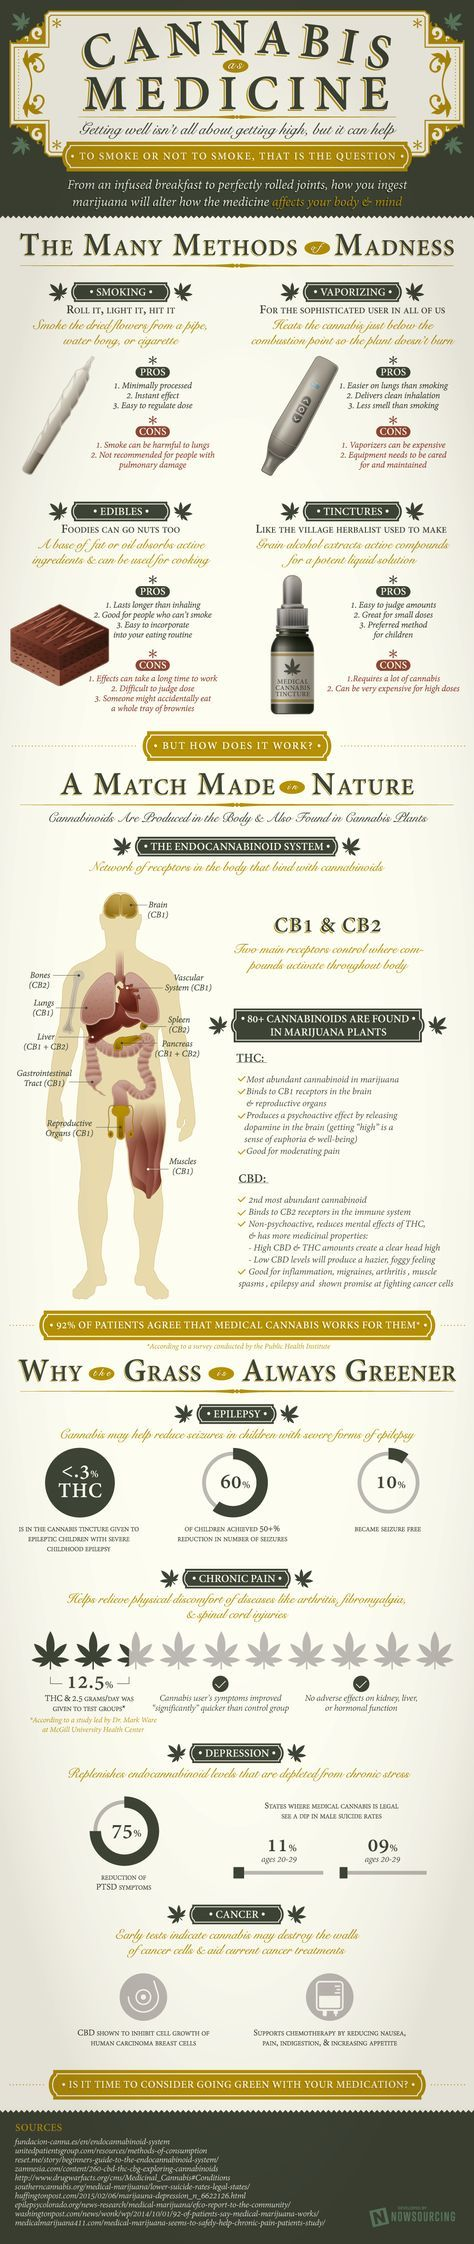 Cannabis as Medicine #Infographic #Health #Medicine